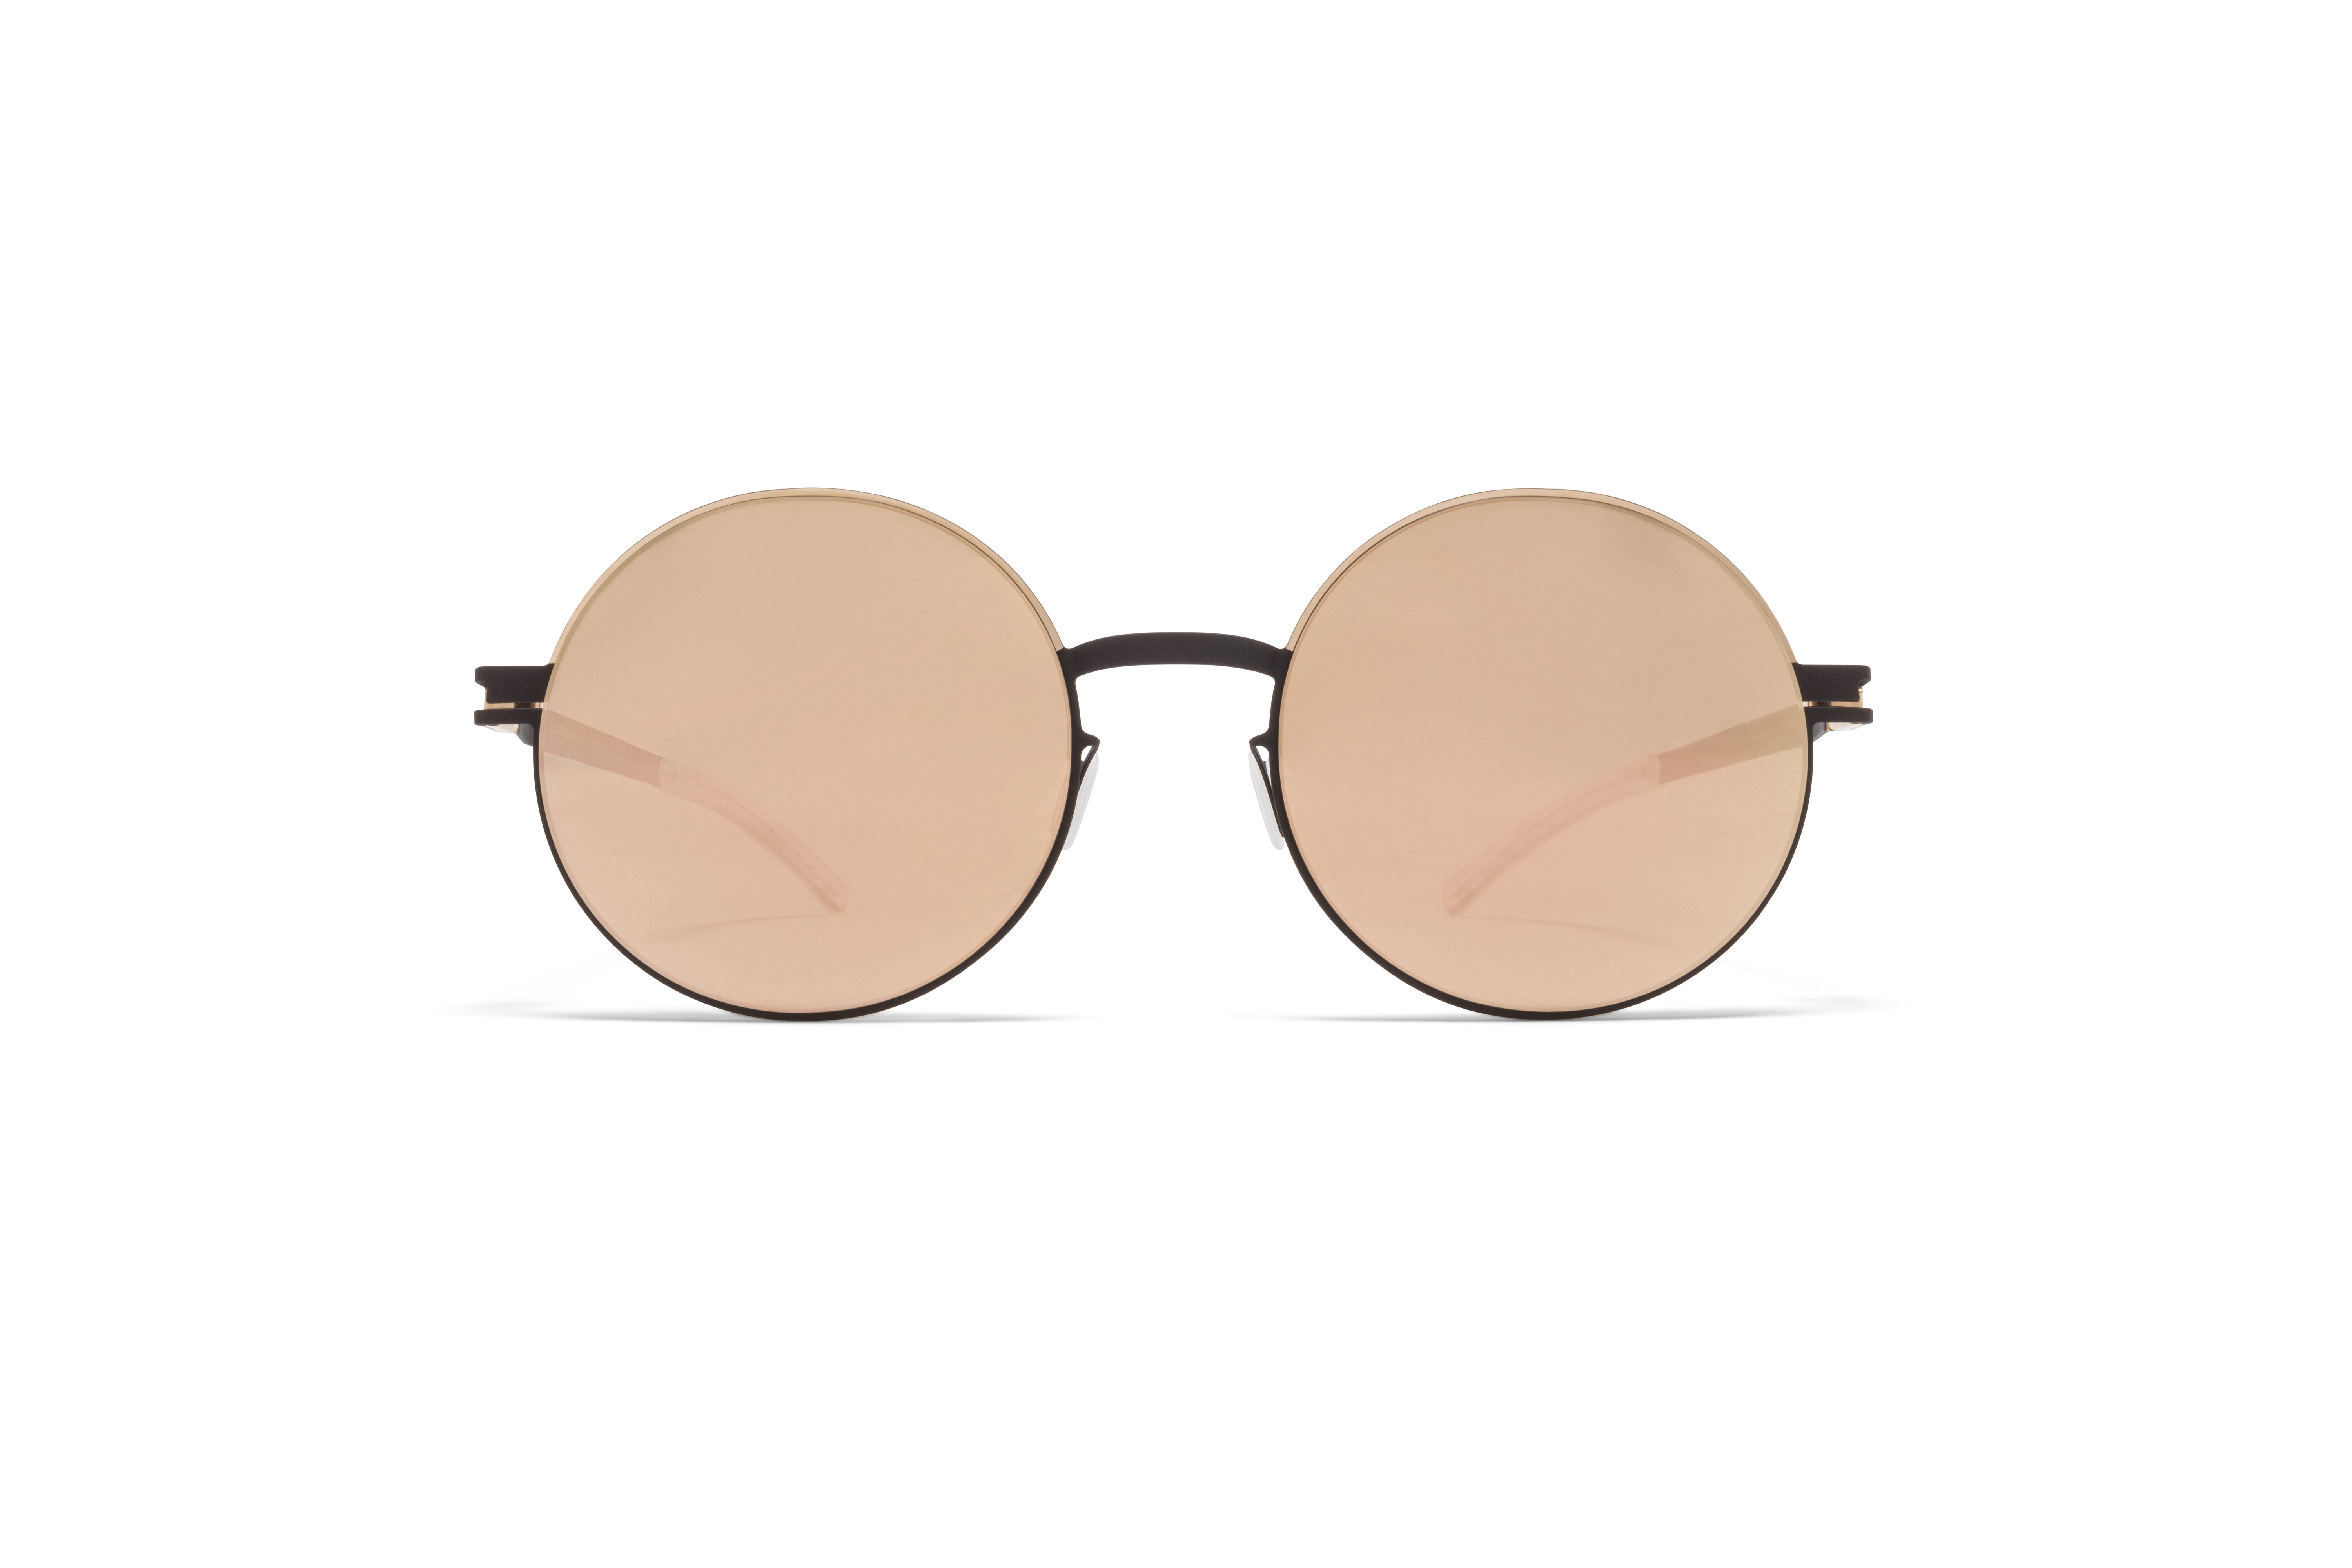 MYKITA Decades Sun Alice Champagne Gold Ebony Brow59fb20469a276